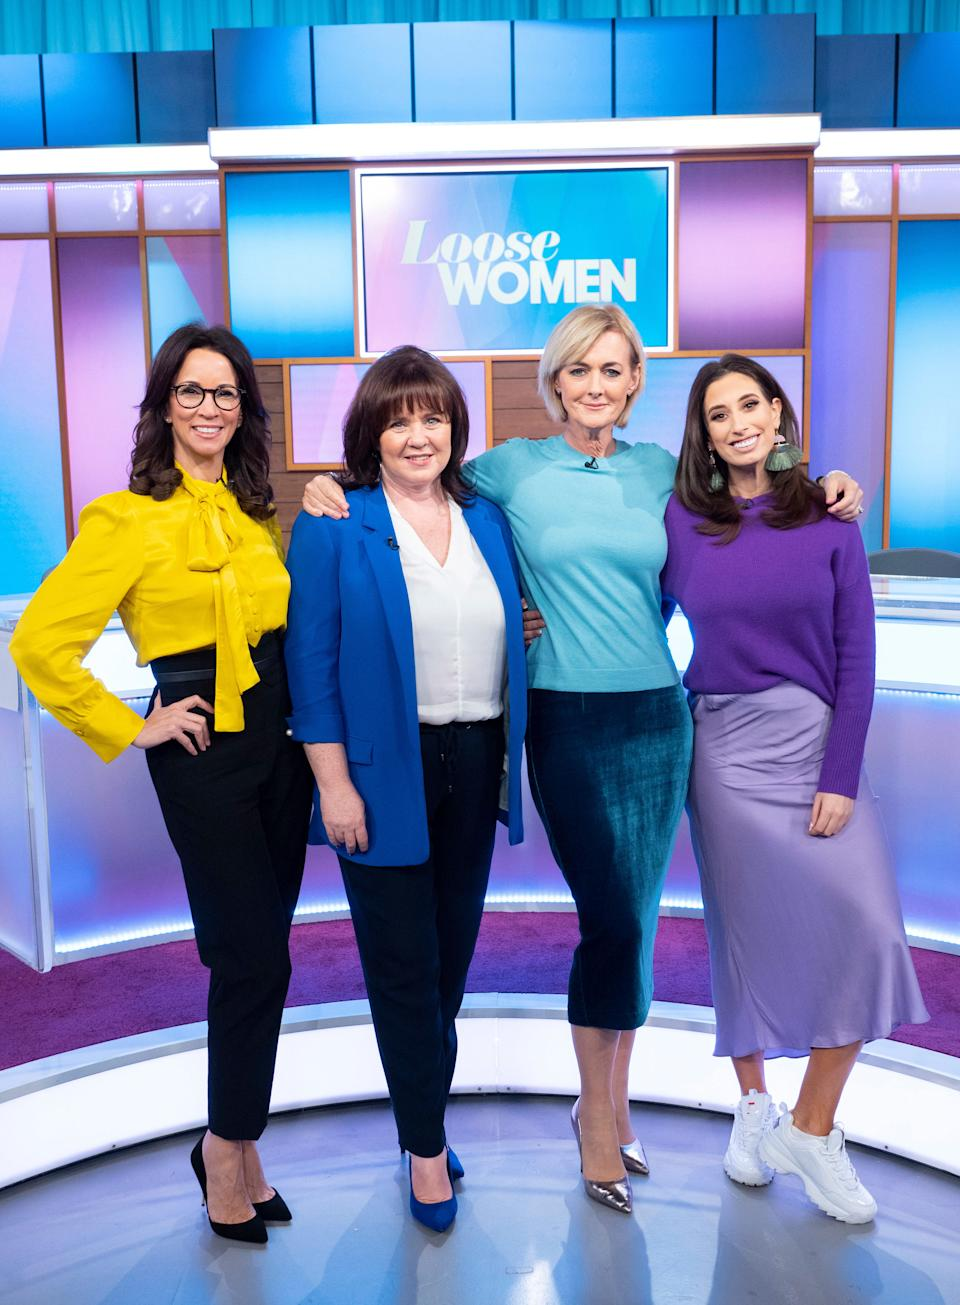 Andrea McLean with 'Loose Women' co-stars Coleen Nolan, Jane Moore and Stacey Solomon. (ITV)